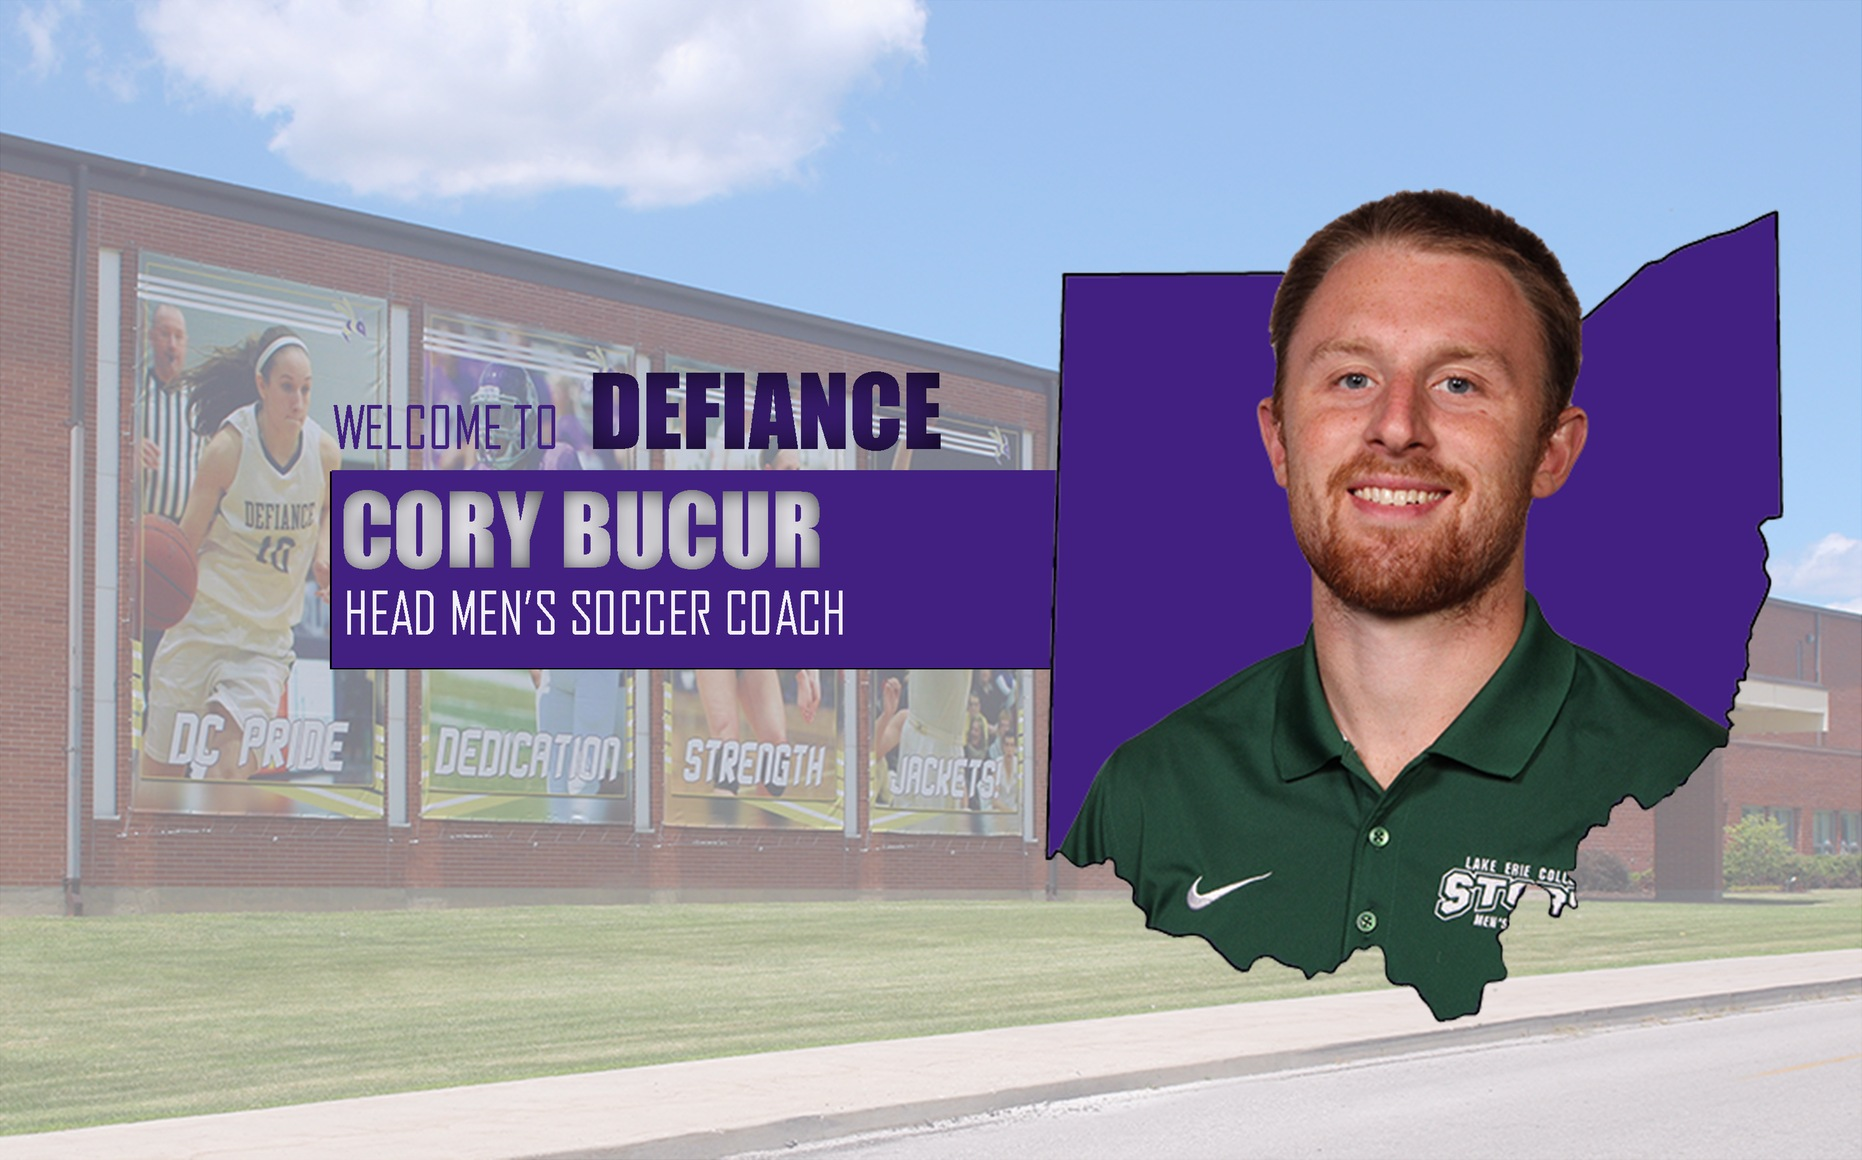 Defiance College Selects Cory Bucur as Head Men's Soccer Coach